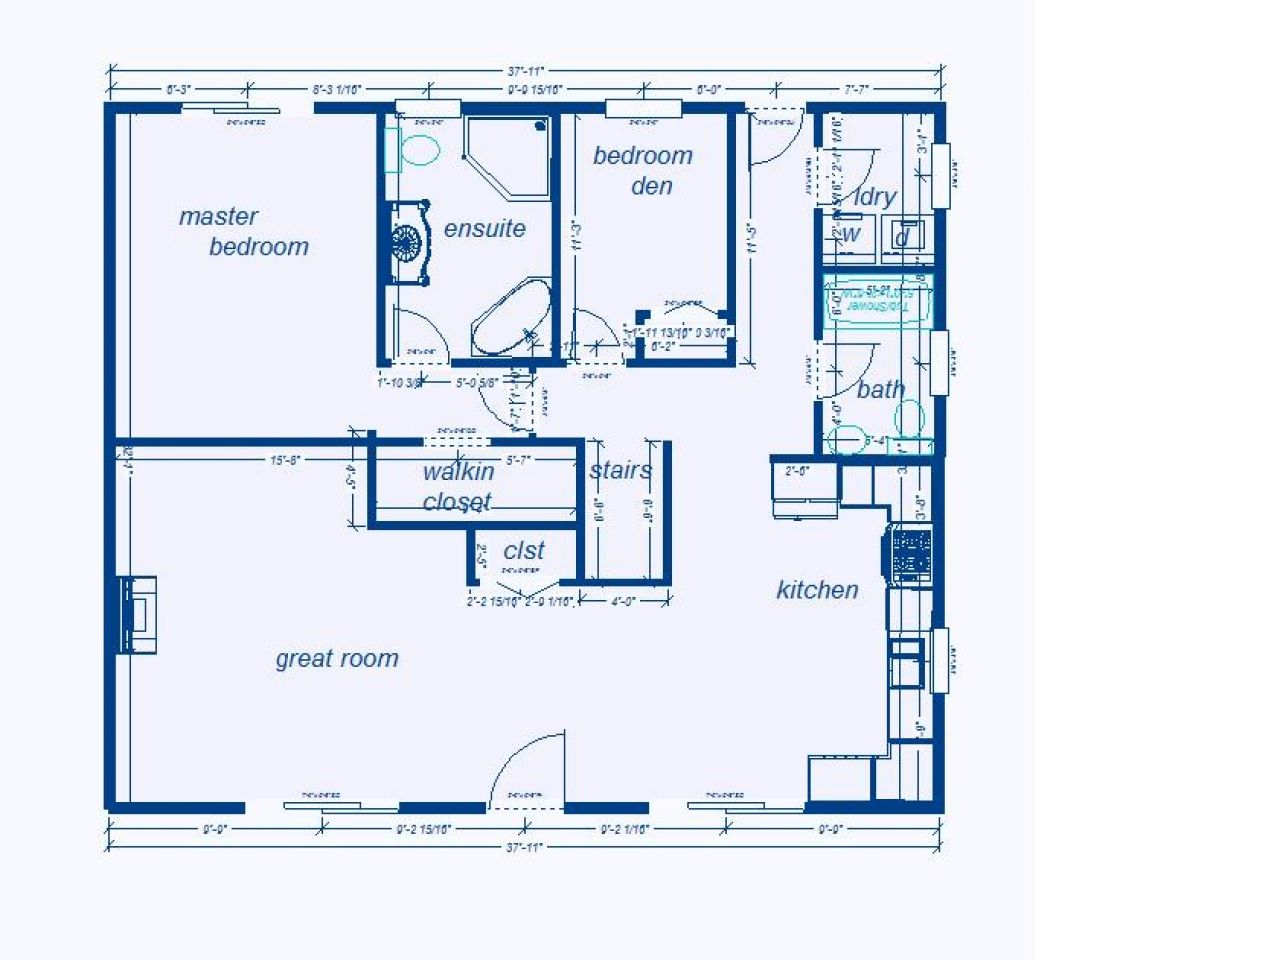 Foundation plans for houses blueprint house free in 12 top for Floor plan blueprints free